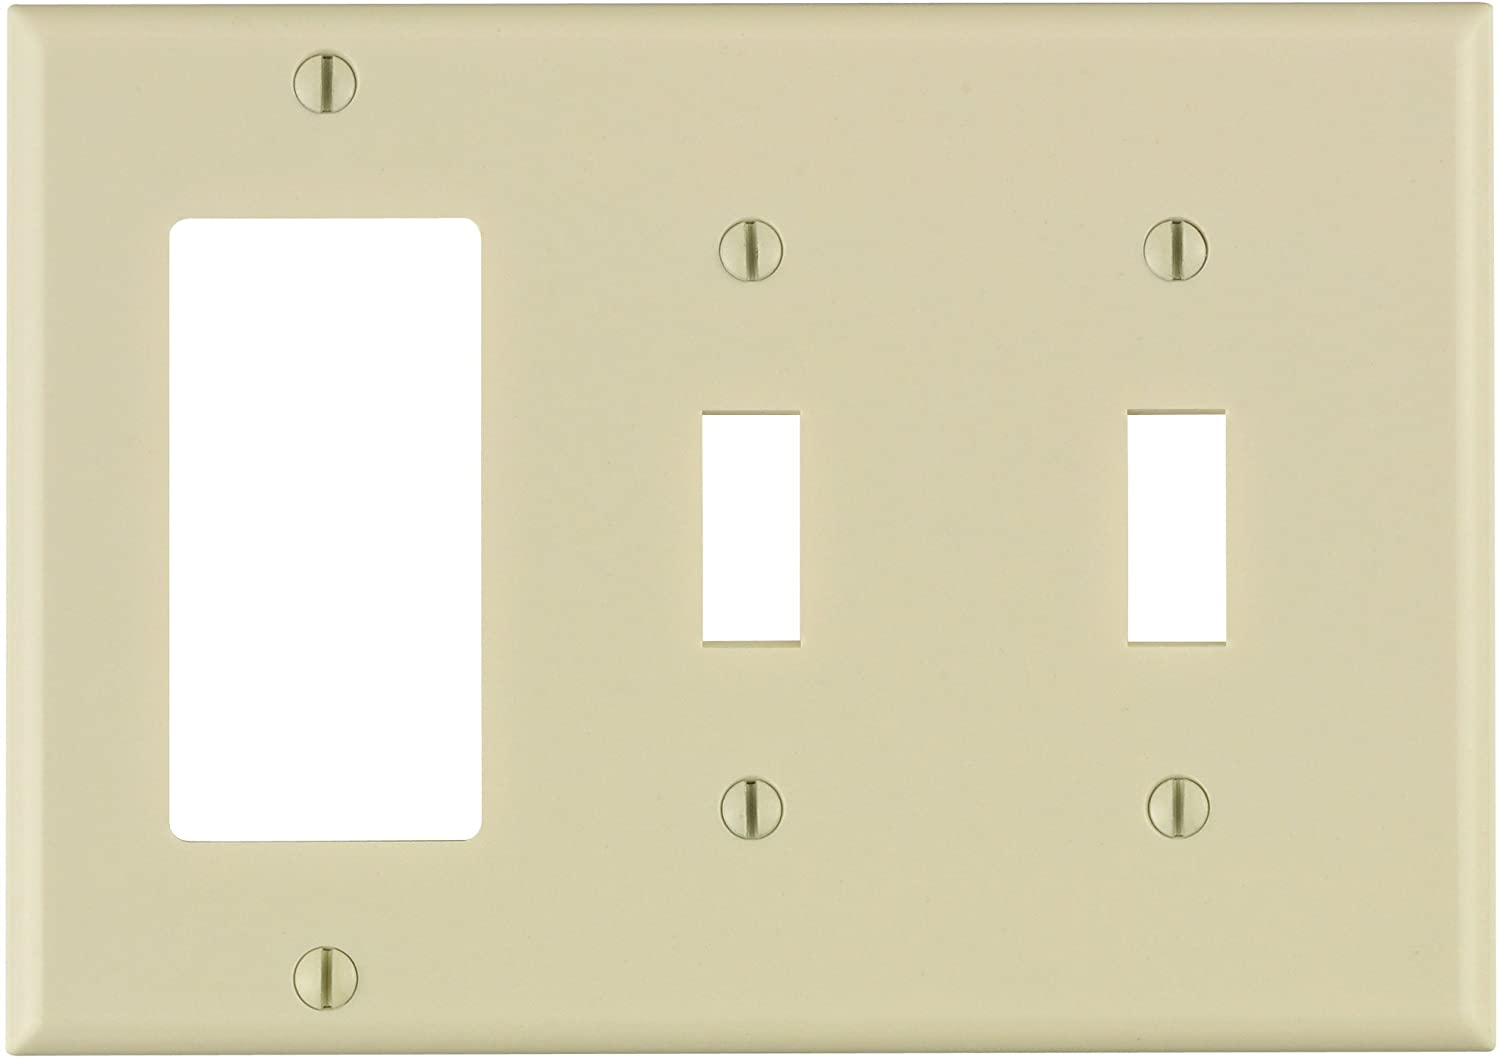 Leviton 80421-T 3-Gang 2-Toggle 1-Decora/GFCI Device Combination Wallplate, Standard Size, Thermoset, Device Mount, Light Almond